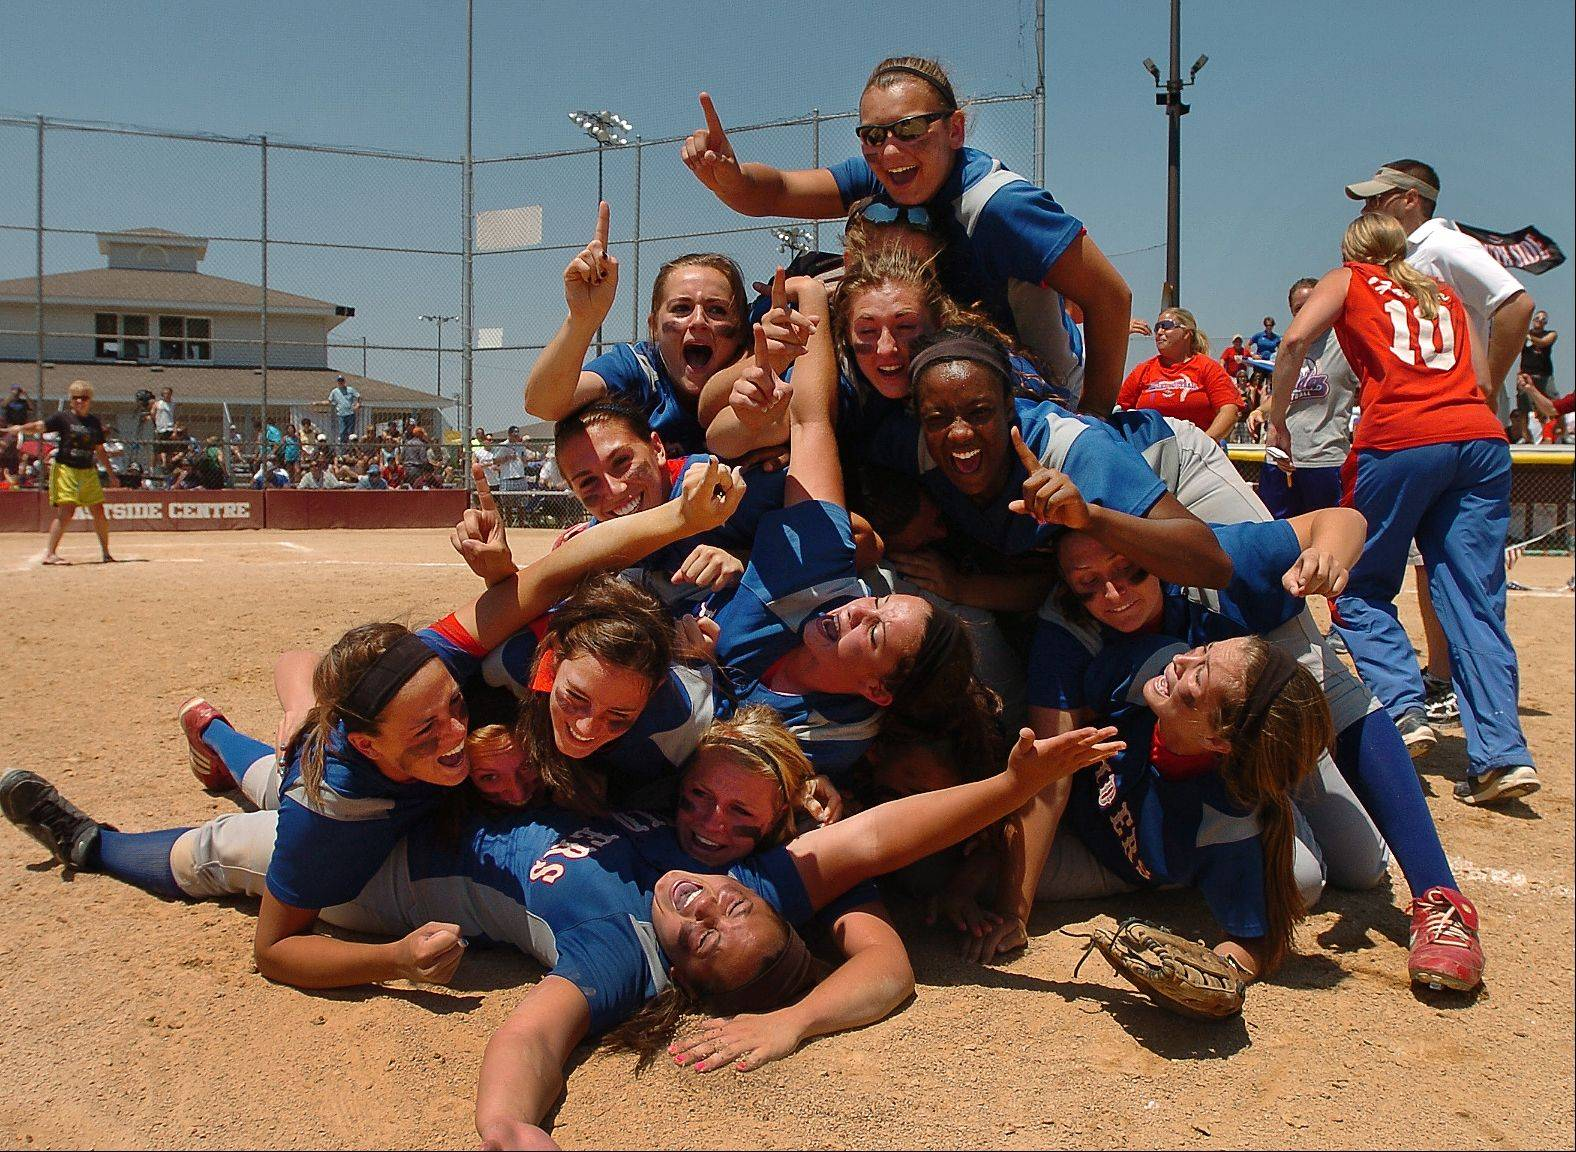 Glenbard South celebrates after winning the Class 3A state softball championship Saturday in East Peoria. The Raiders defeated defending champion Marengo 2-1.